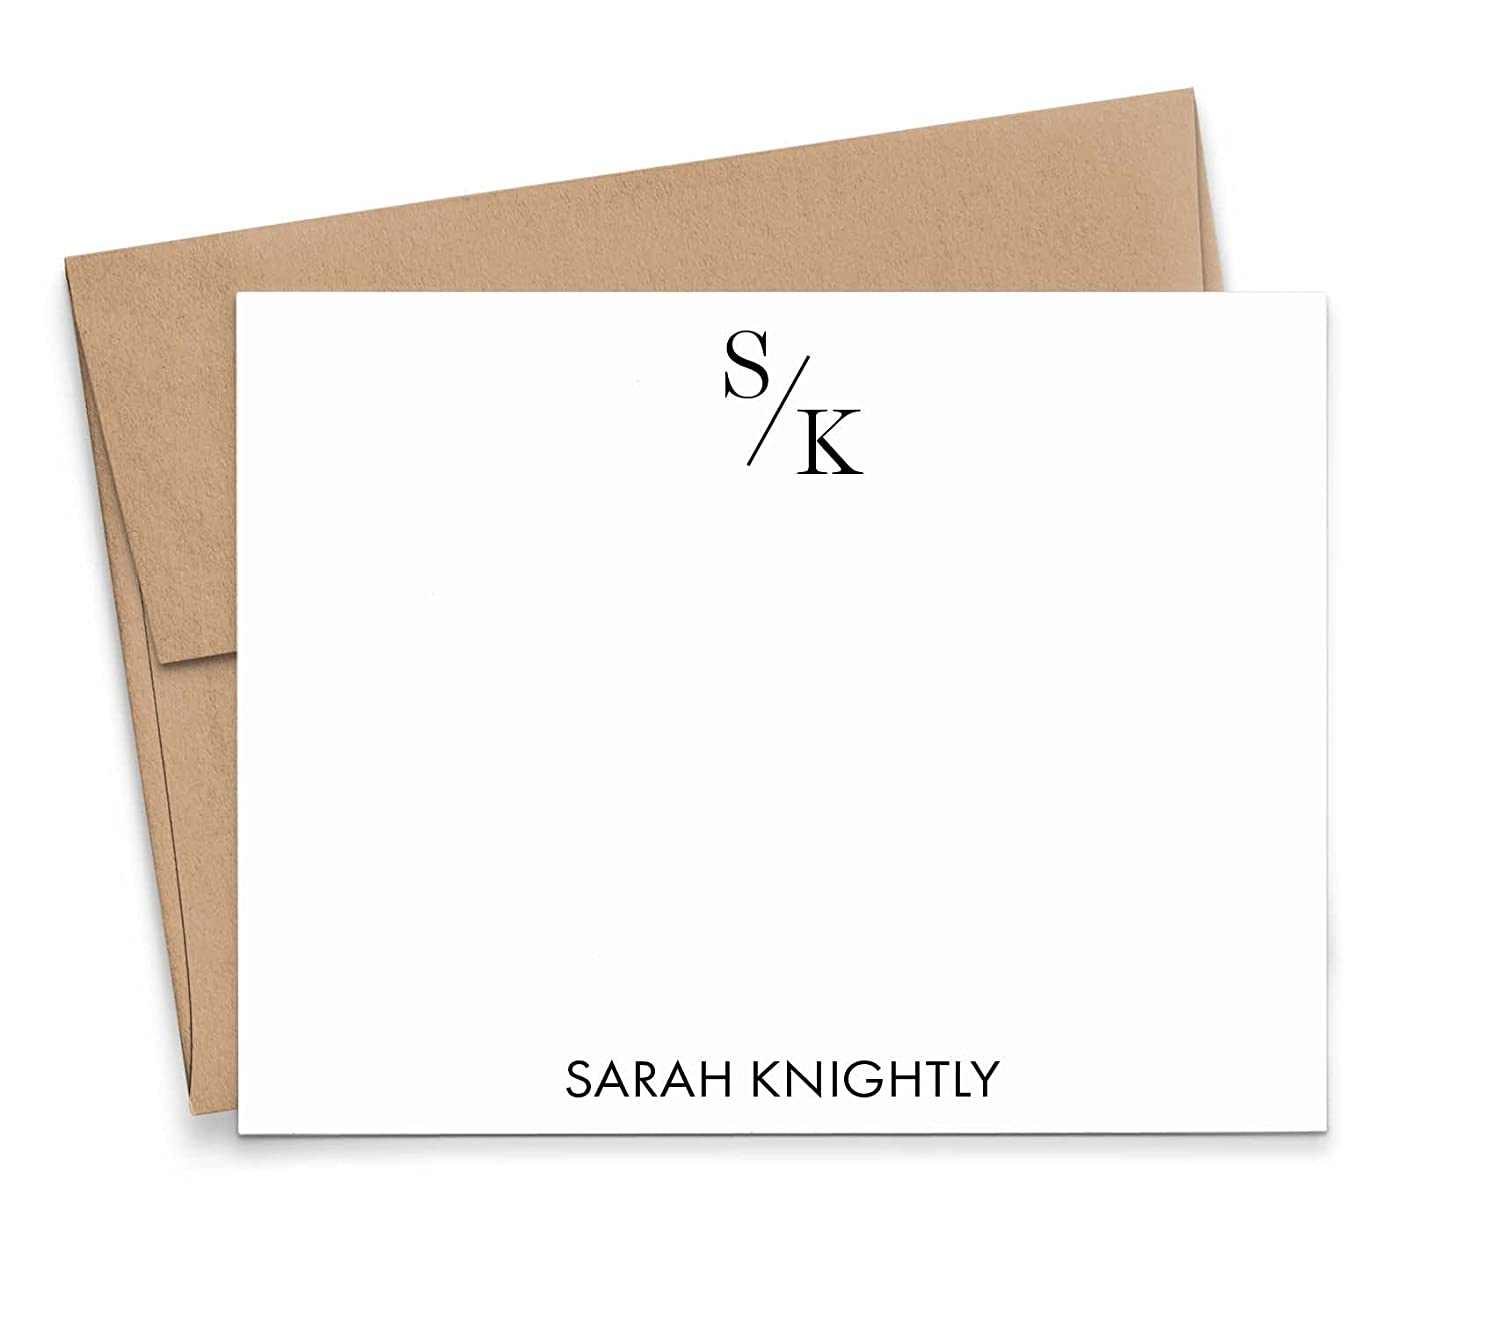 Personalized Max 67% OFF Two Letter Popular product Stationary Monogram Set FLAT